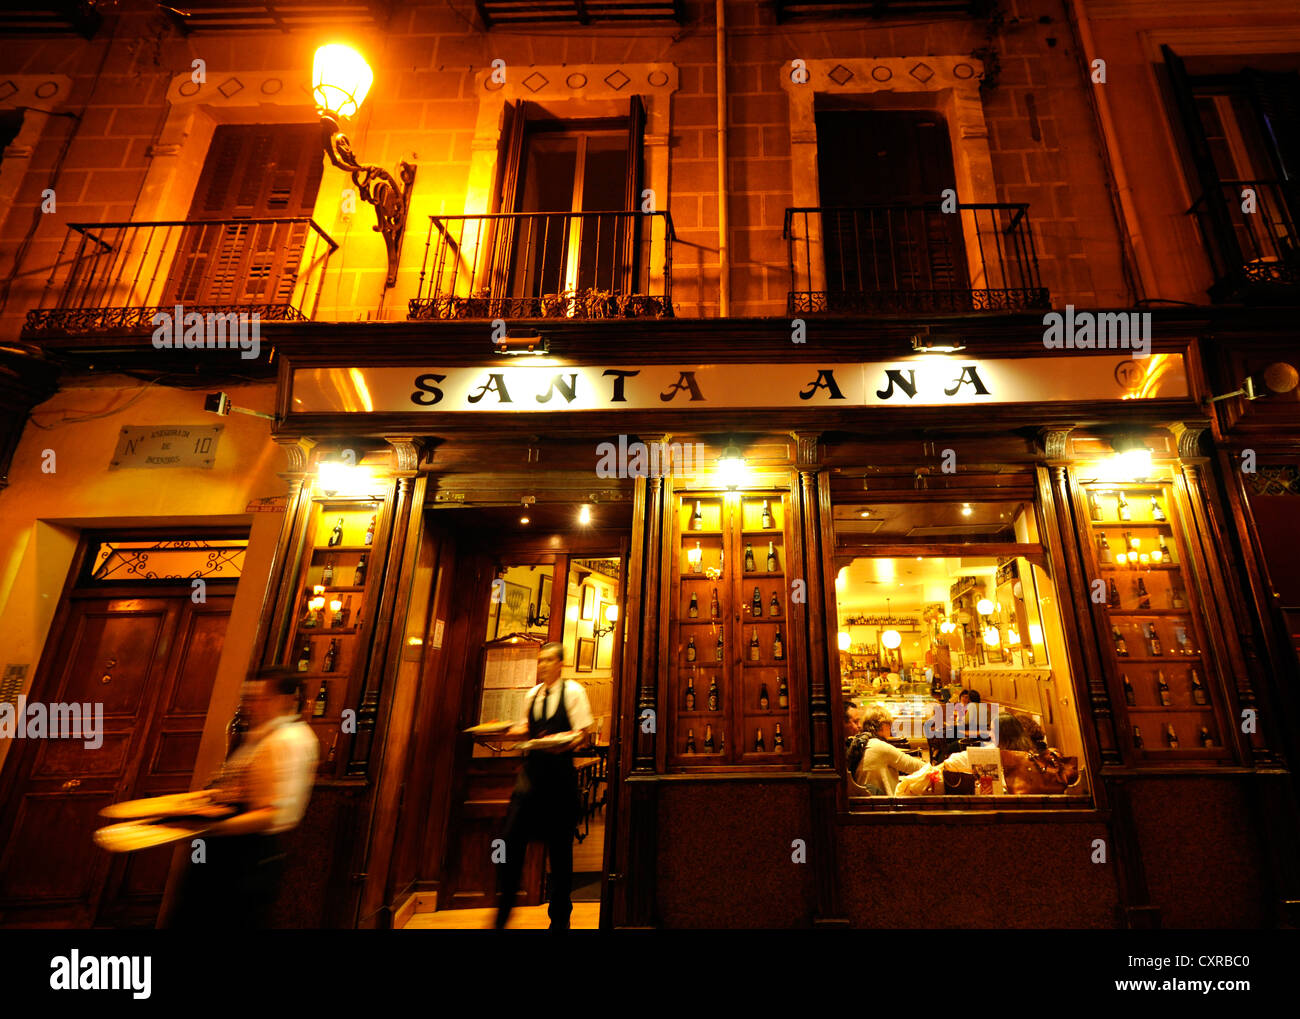 Waiters at the Restaurant Santa Anna, at night, Plaza Santa Ana, Madrid, Spain, Europe, PublicGround - Stock Image